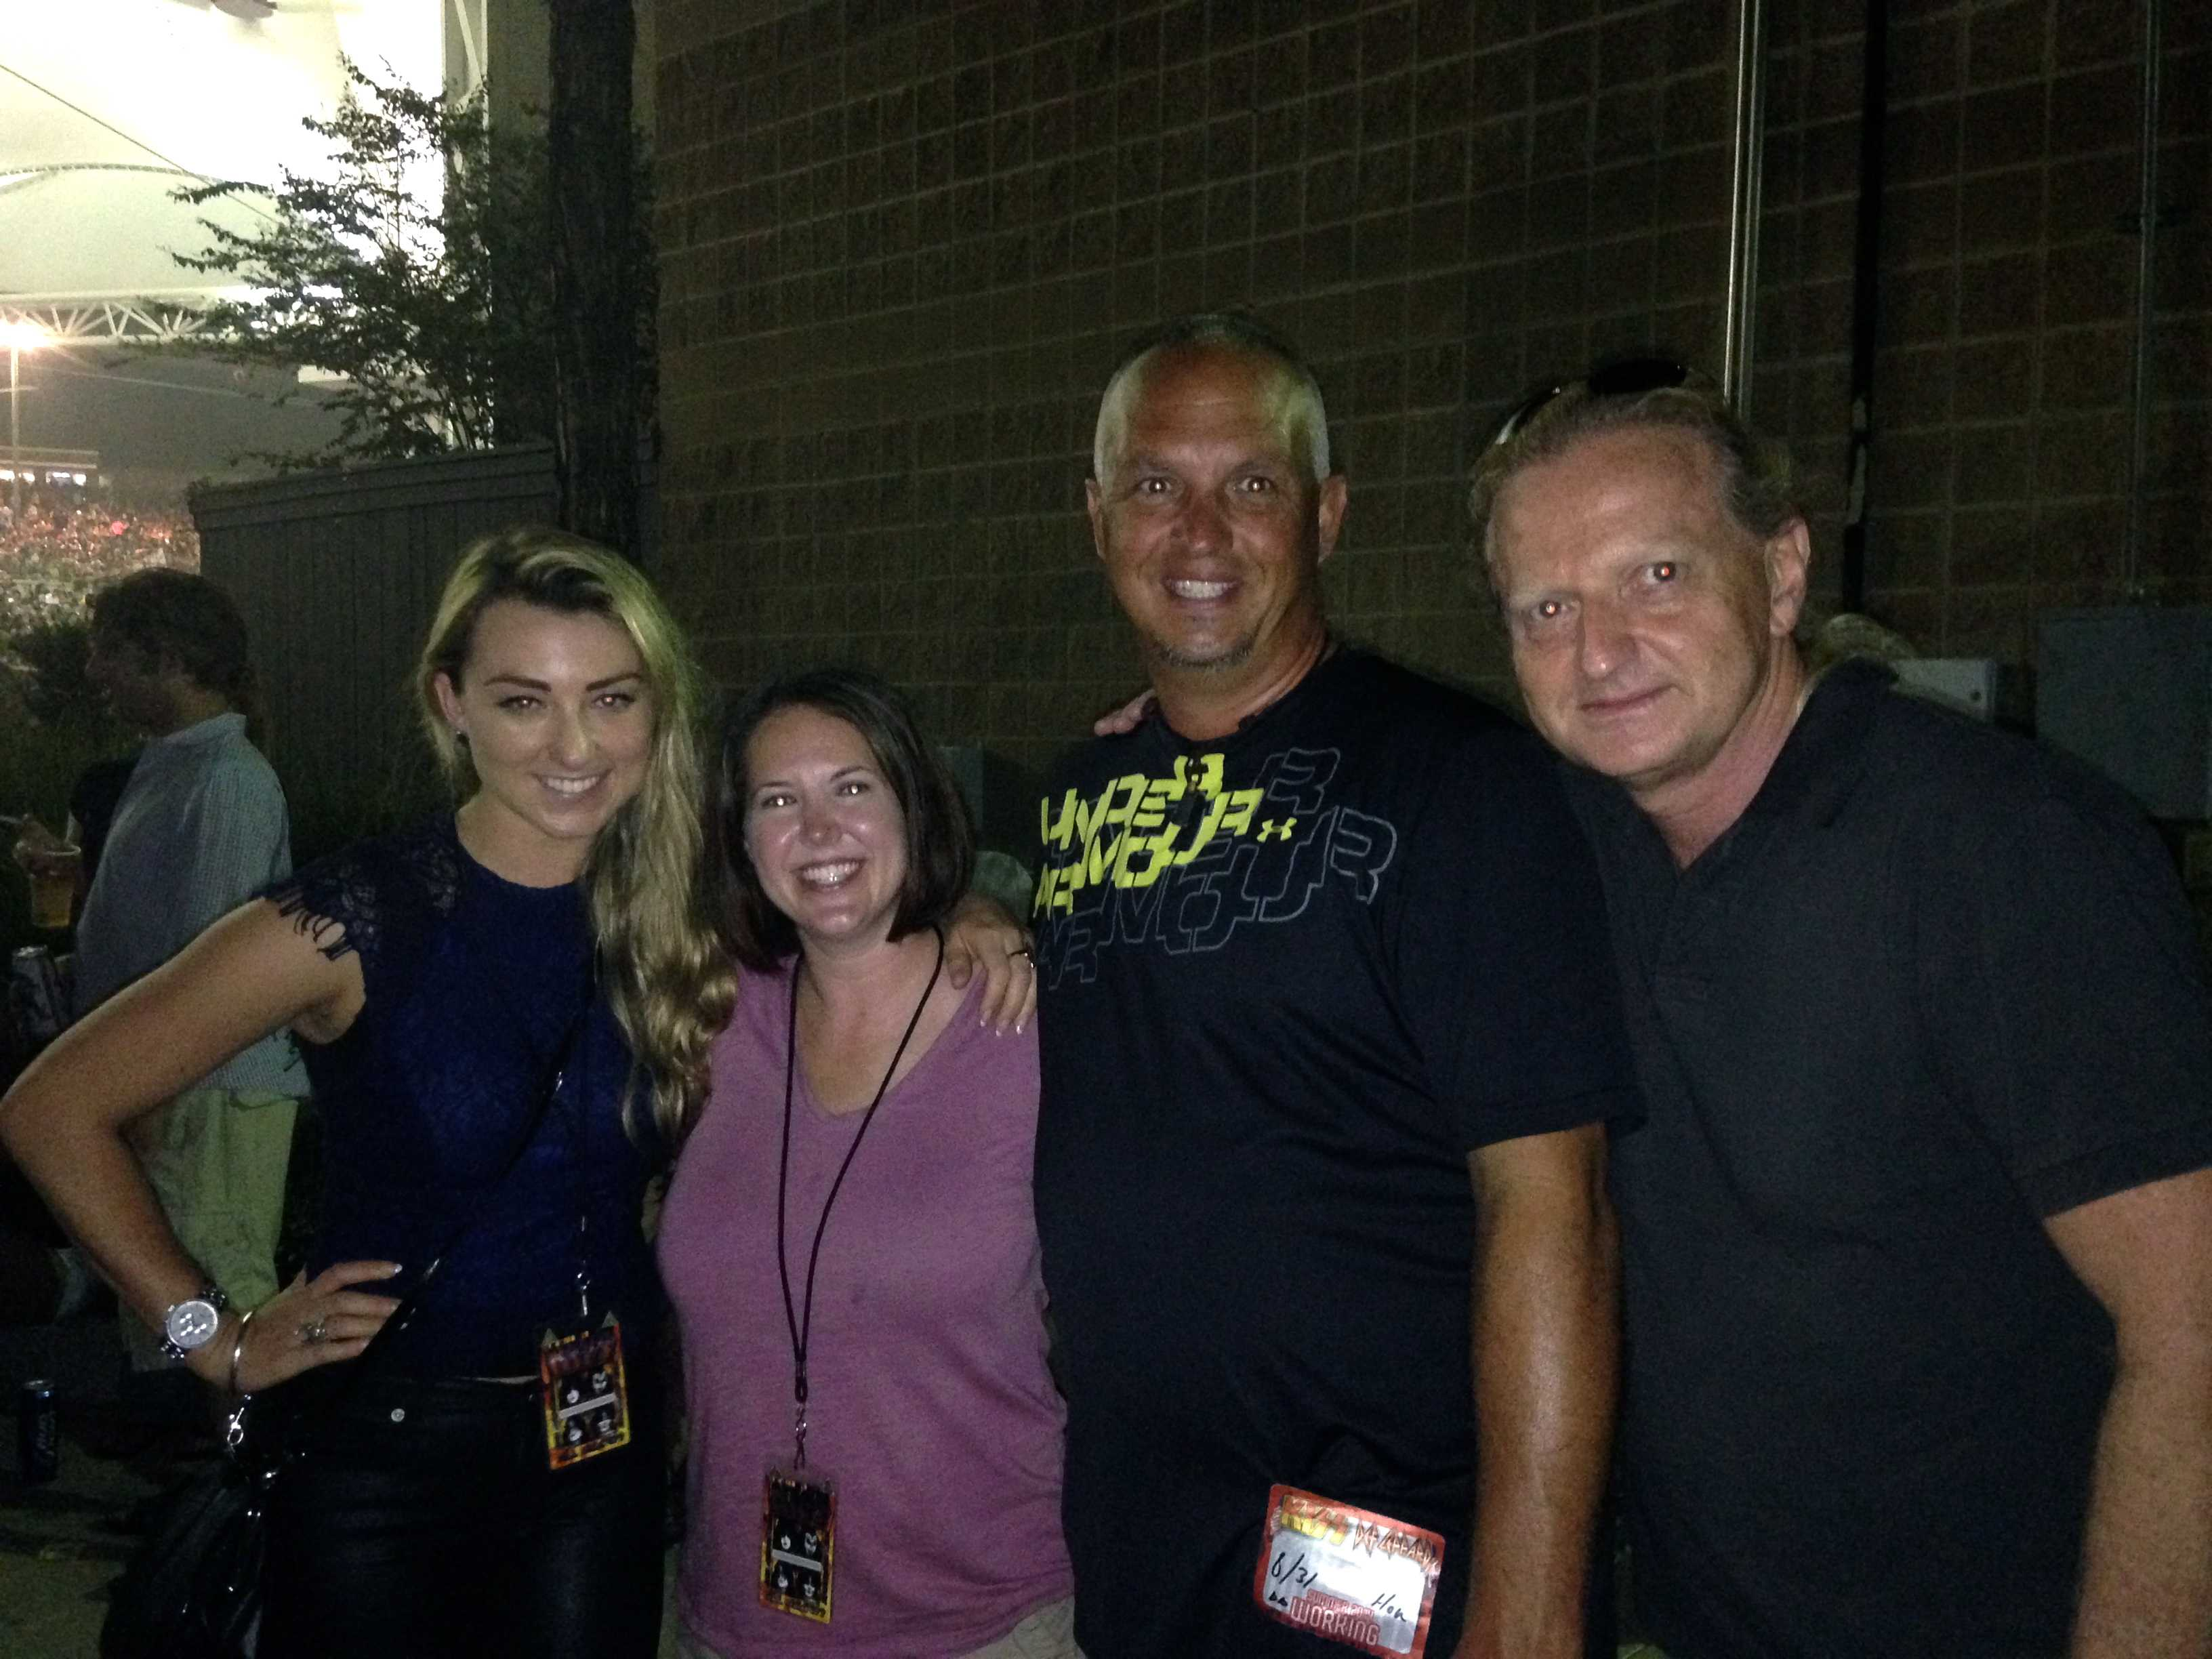 4. Hayley, Diane, Brian and David (if he doesn't gate-keep this one, I know his love of flash photography)